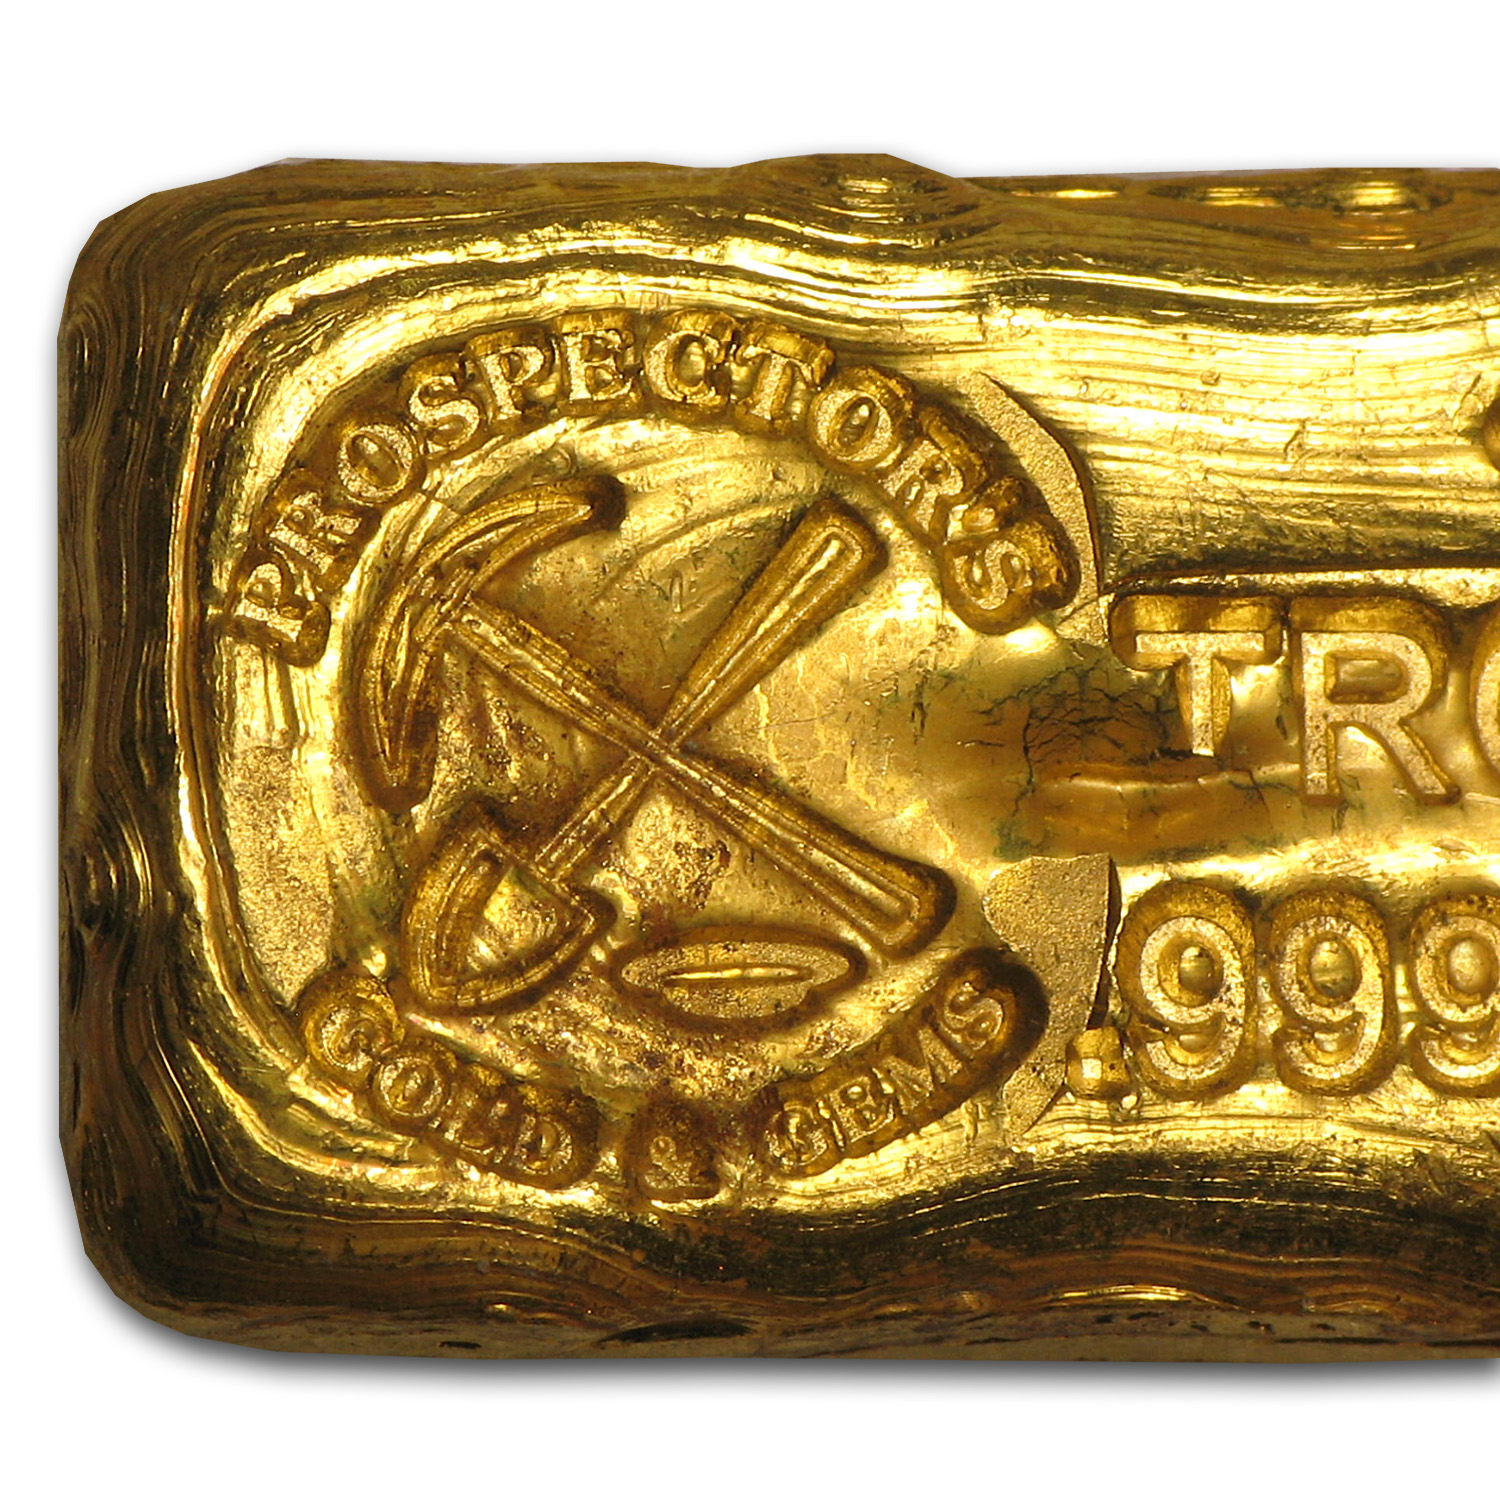 1 oz Gold Bar - Prospector's Gold & Gems